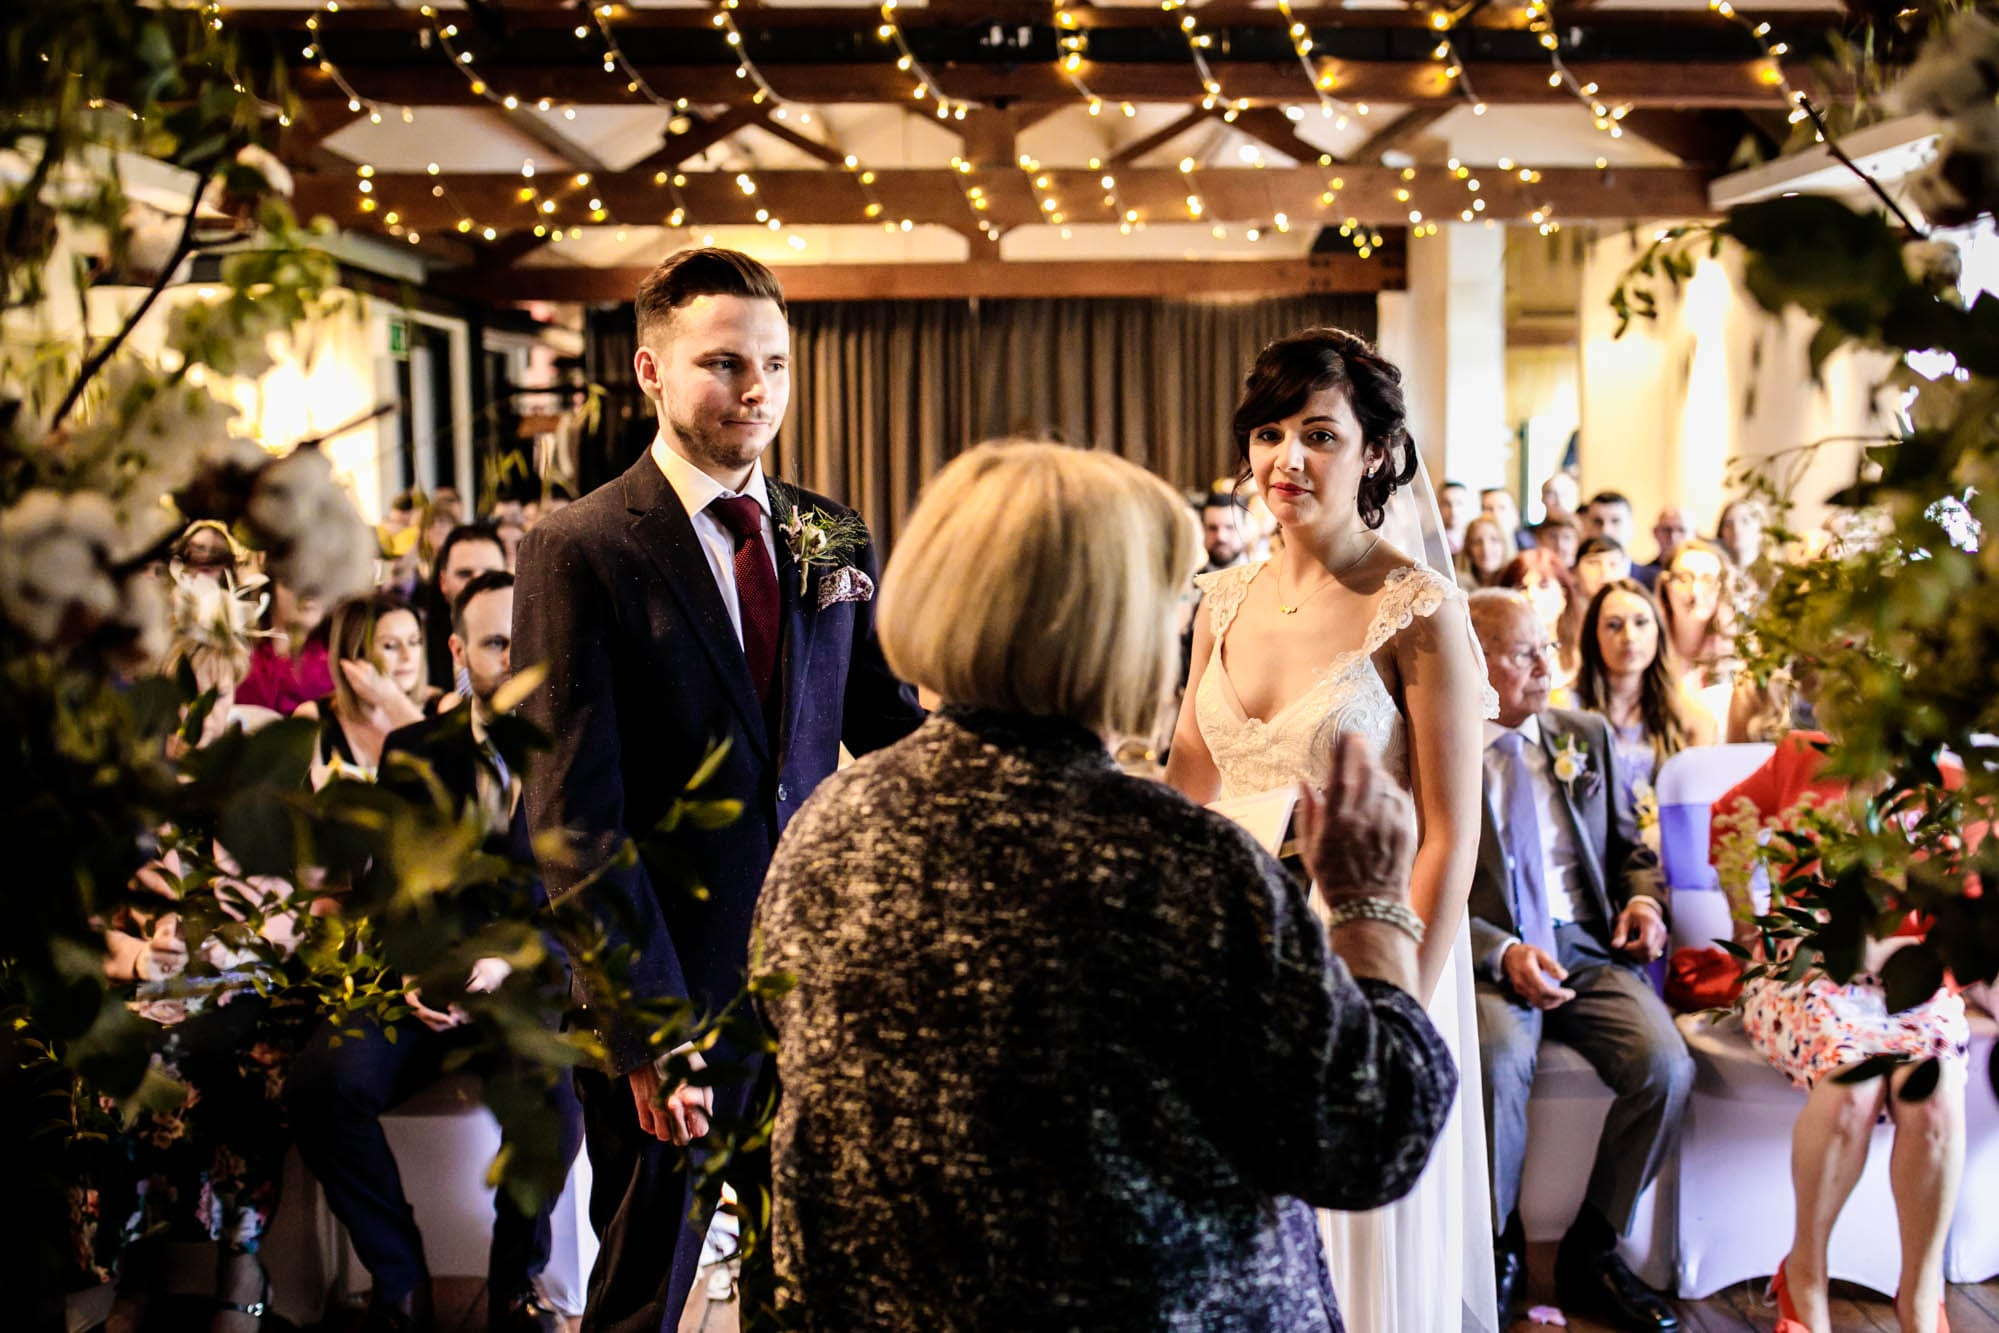 Wedding Ceremony Castlefield Rooms Manchester